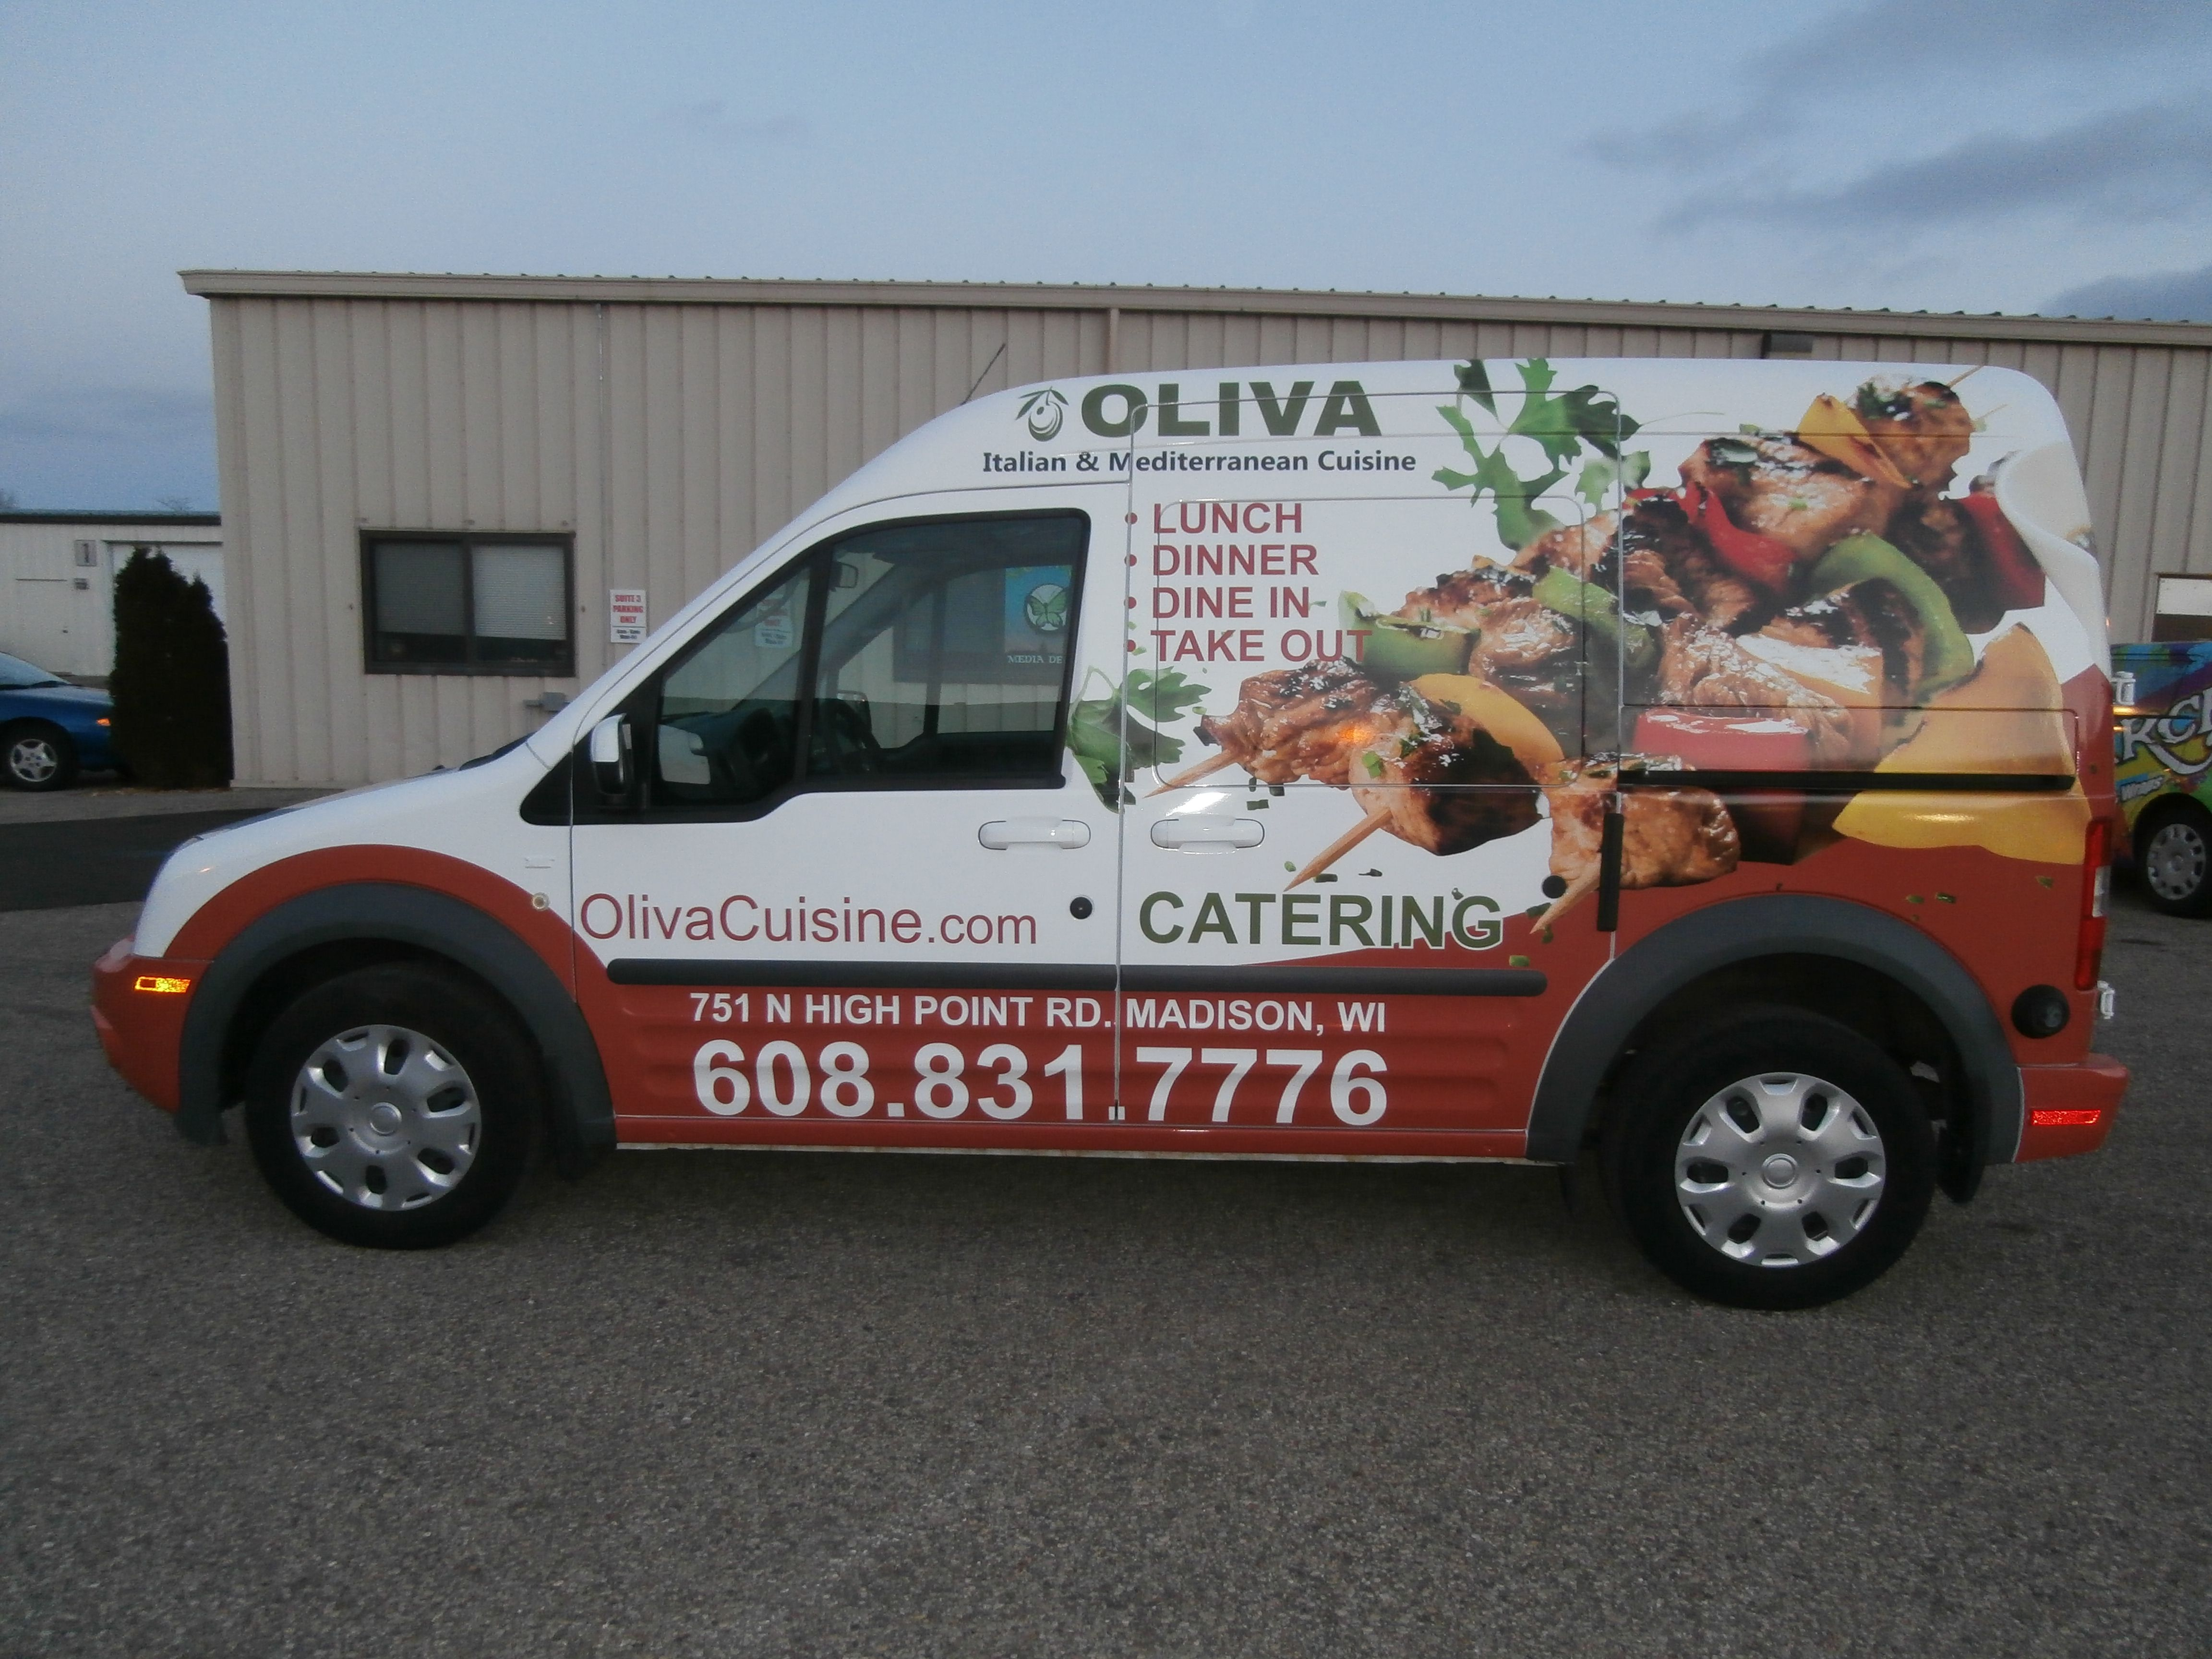 Oliva Vehicle Graphics done by Monarch Media Designs in Madison, WI ...